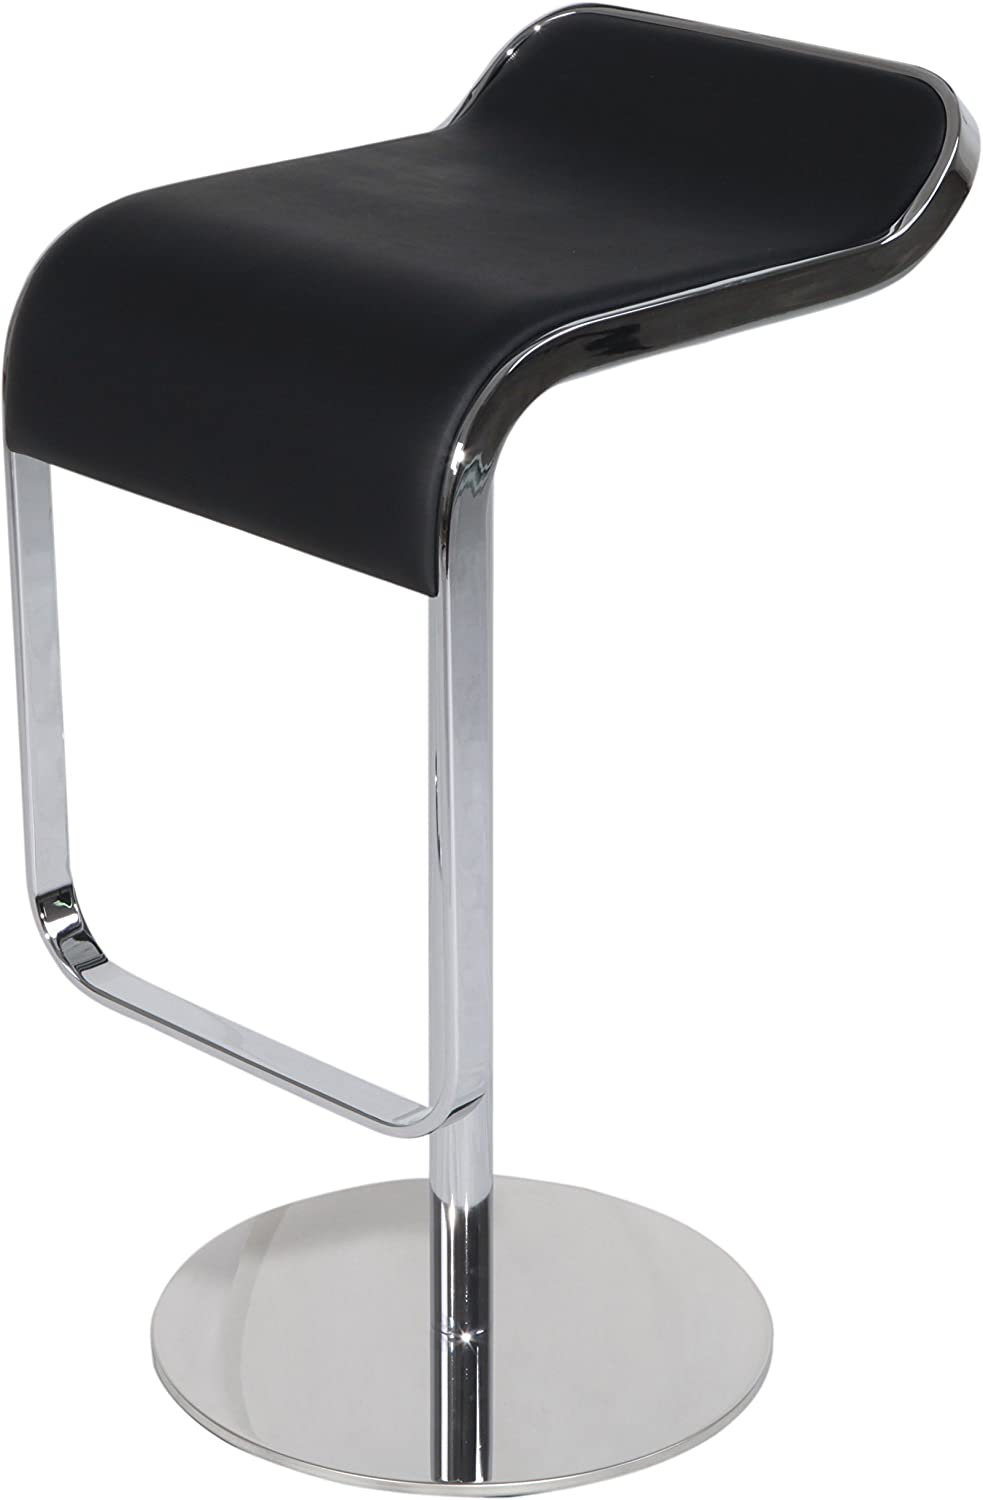 MLF LEM Style Piston Bar Stool. Adjustable 27.2 -33.1 Smooth Hydraulic Piston. 360176 Swivel Spin Smooth, Black Italian Leather. Sturdy Well-Made Polished Chrome Steel Frame.